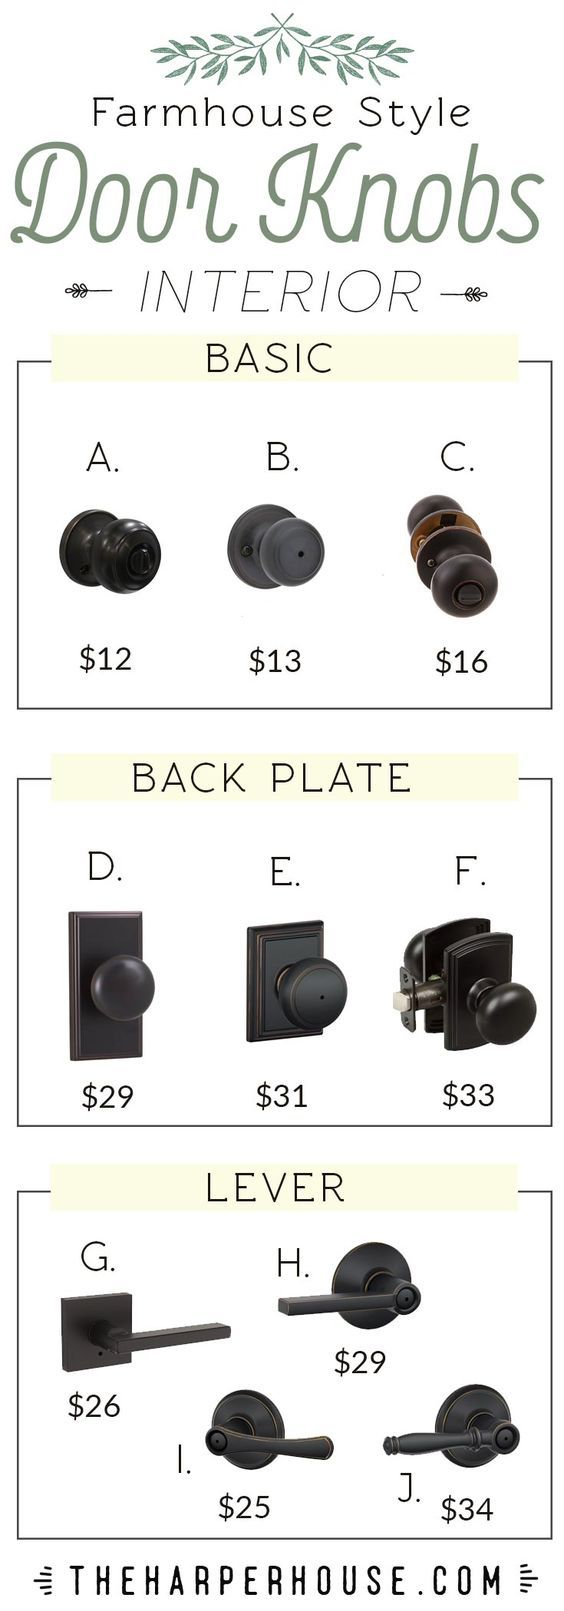 Farmhouse style interior door knobs are hard to find. Here's a roundup of my favorite budget friendly options. Most available on Amazon! black door knobs, interior door hardware, farmhouse door handles, oil rubbed bronze door knob